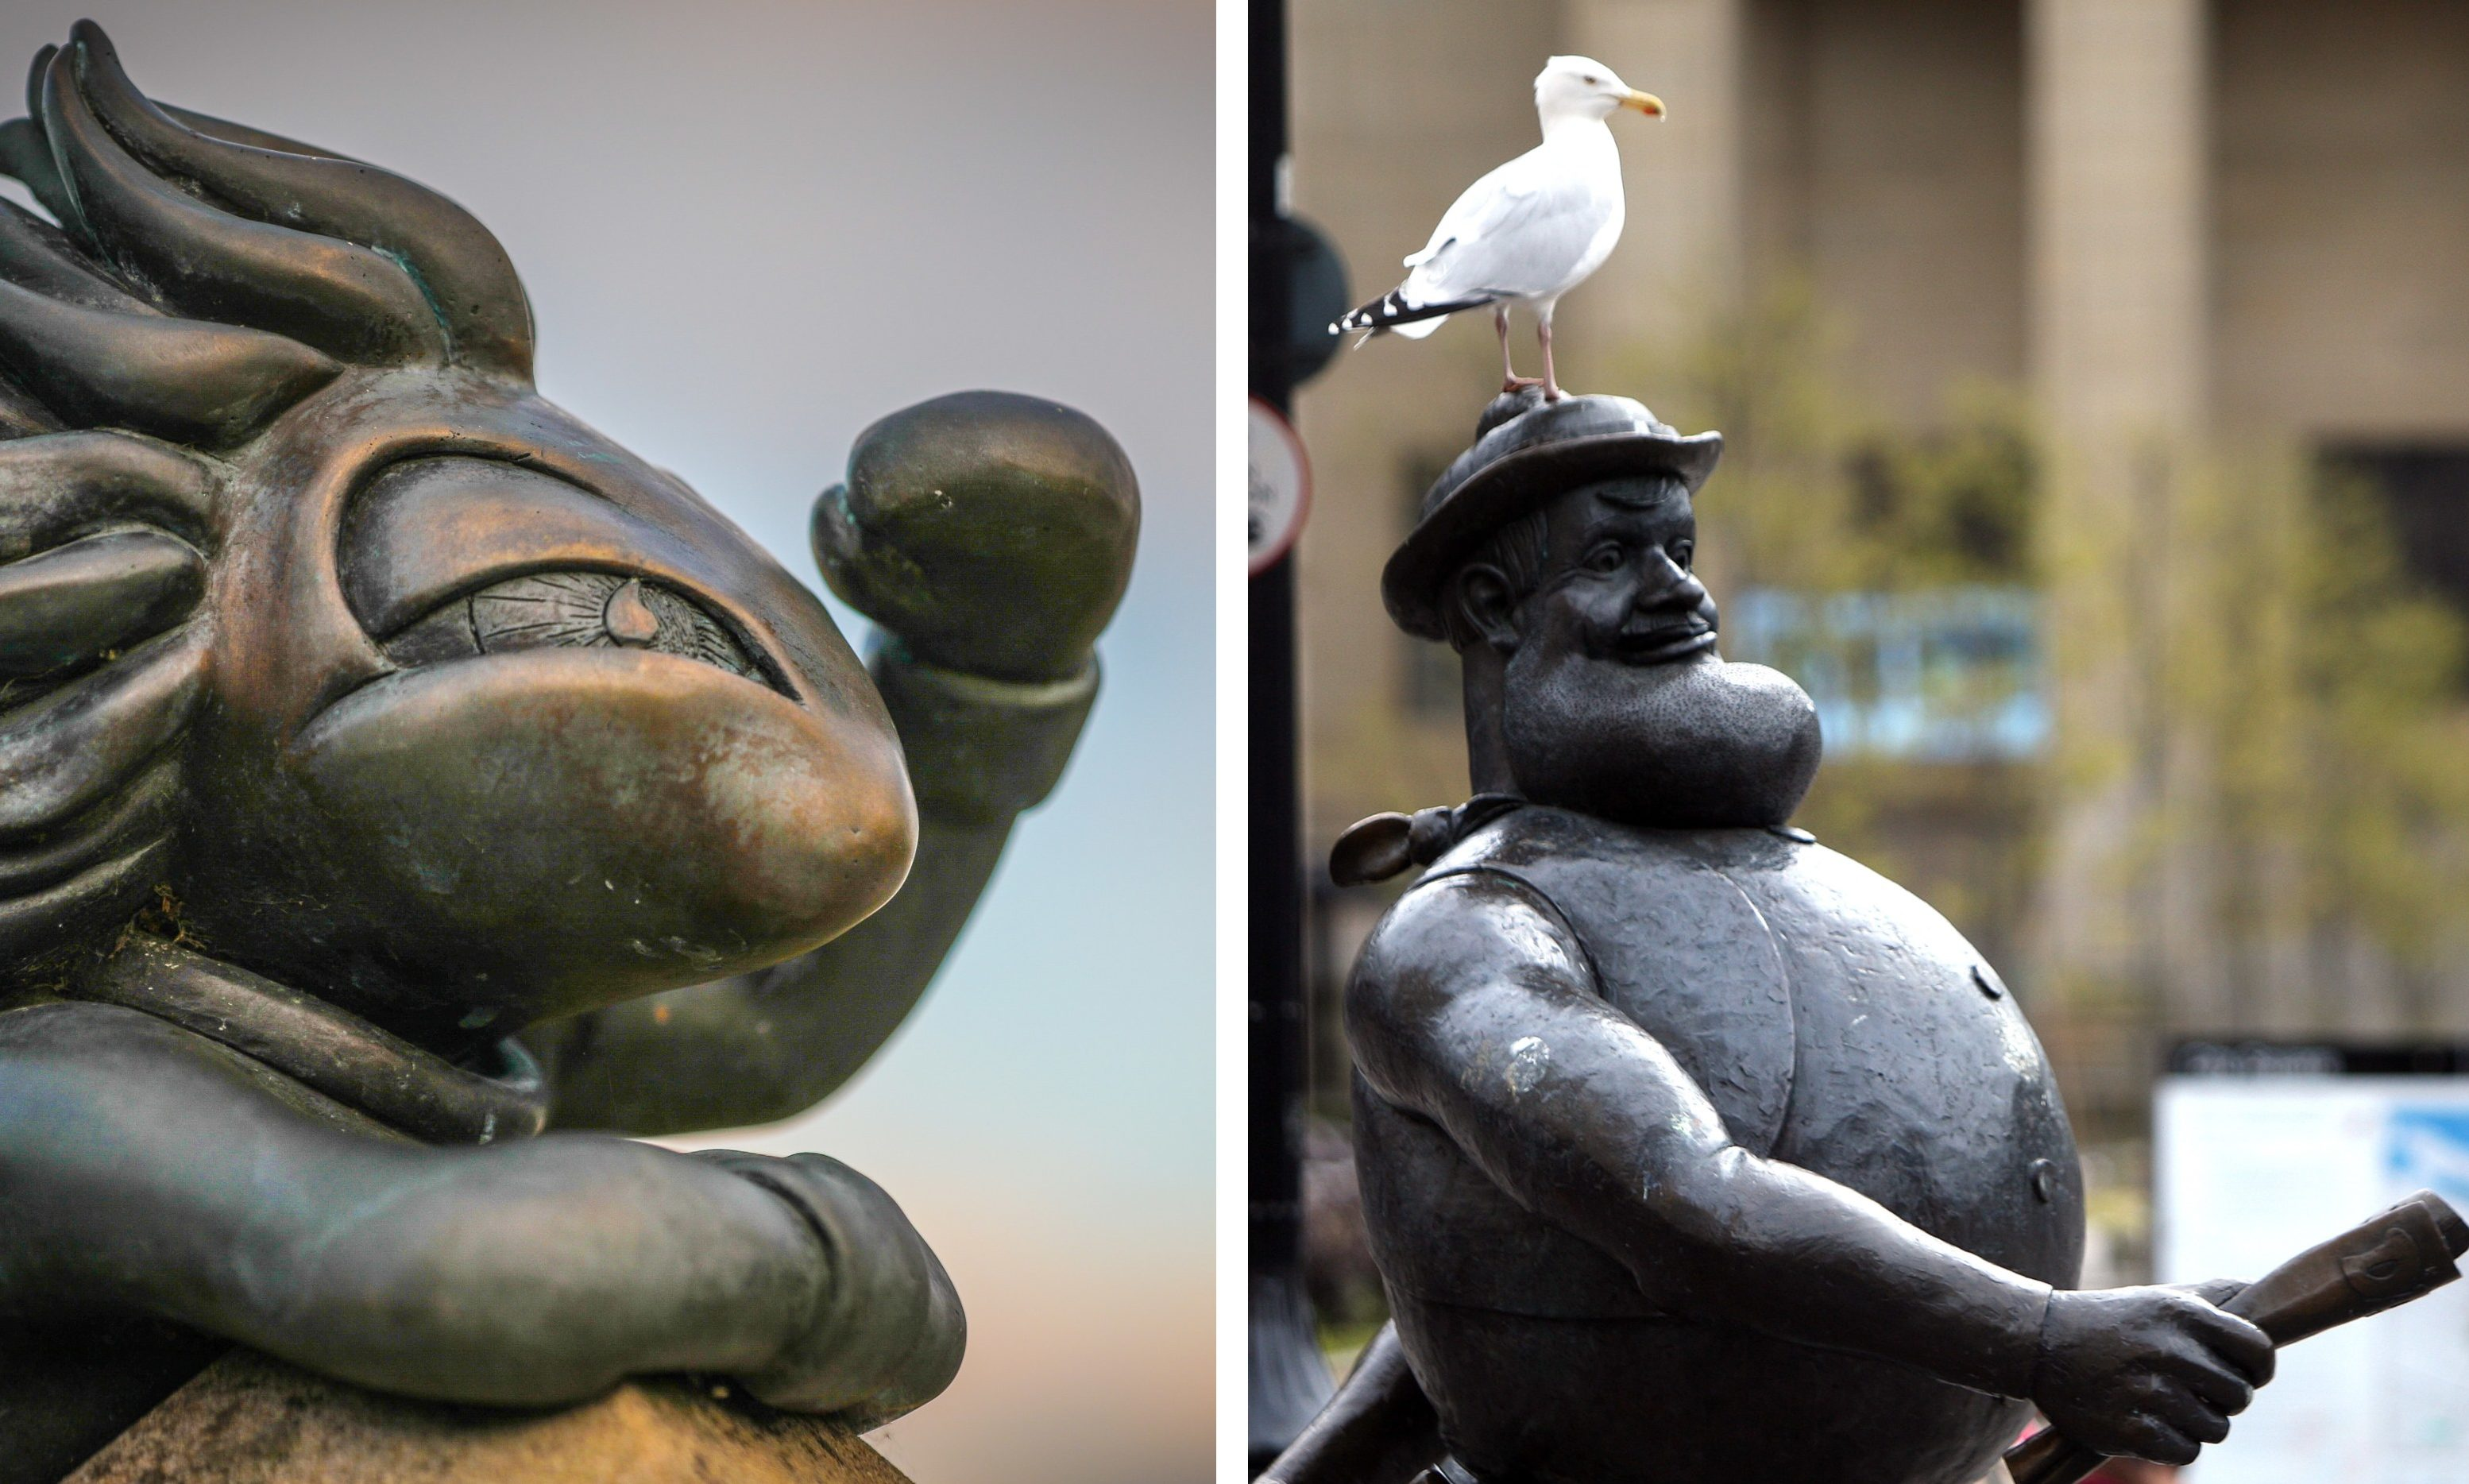 Dundee's Lemmings/Desperate Dan statues.